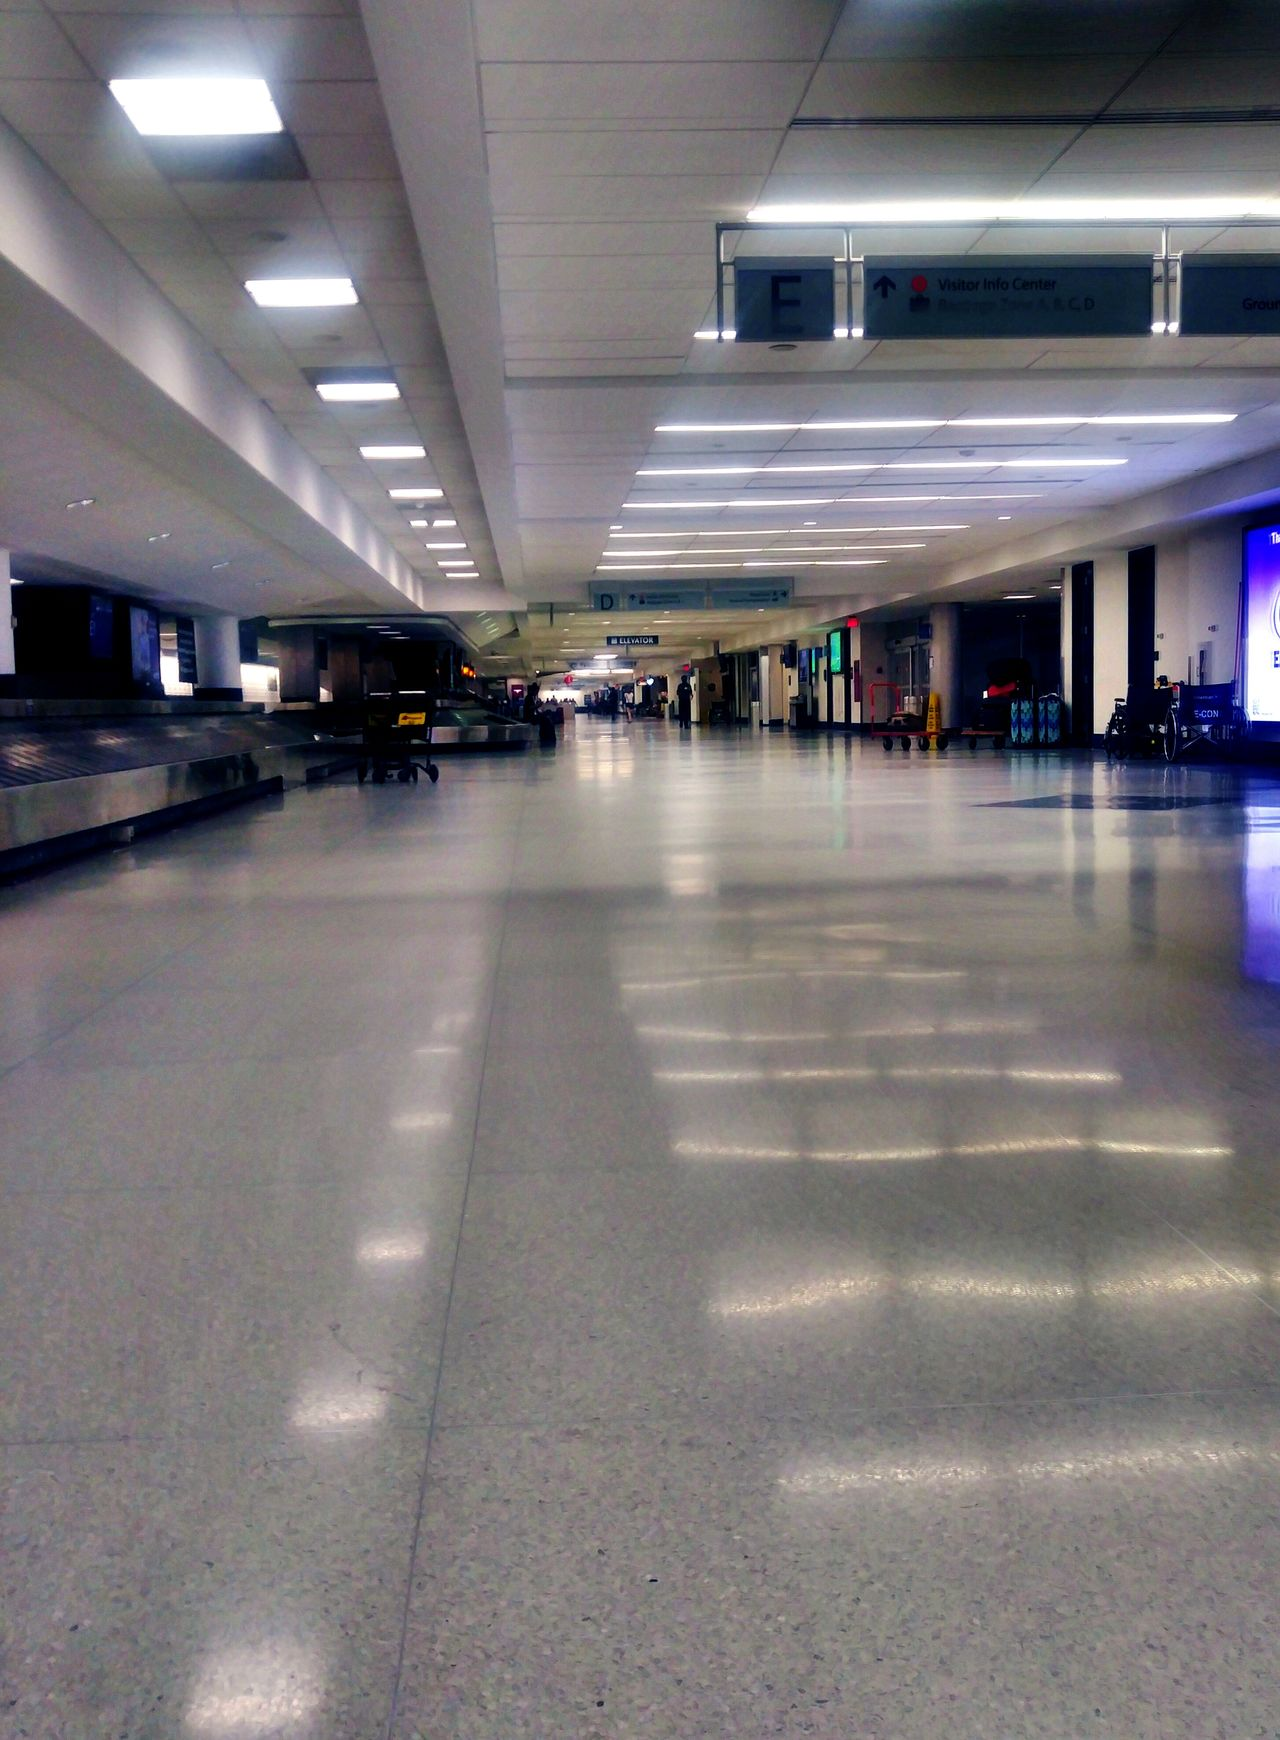 Airport Baggage Claim At Night PhonePhotography Transportation